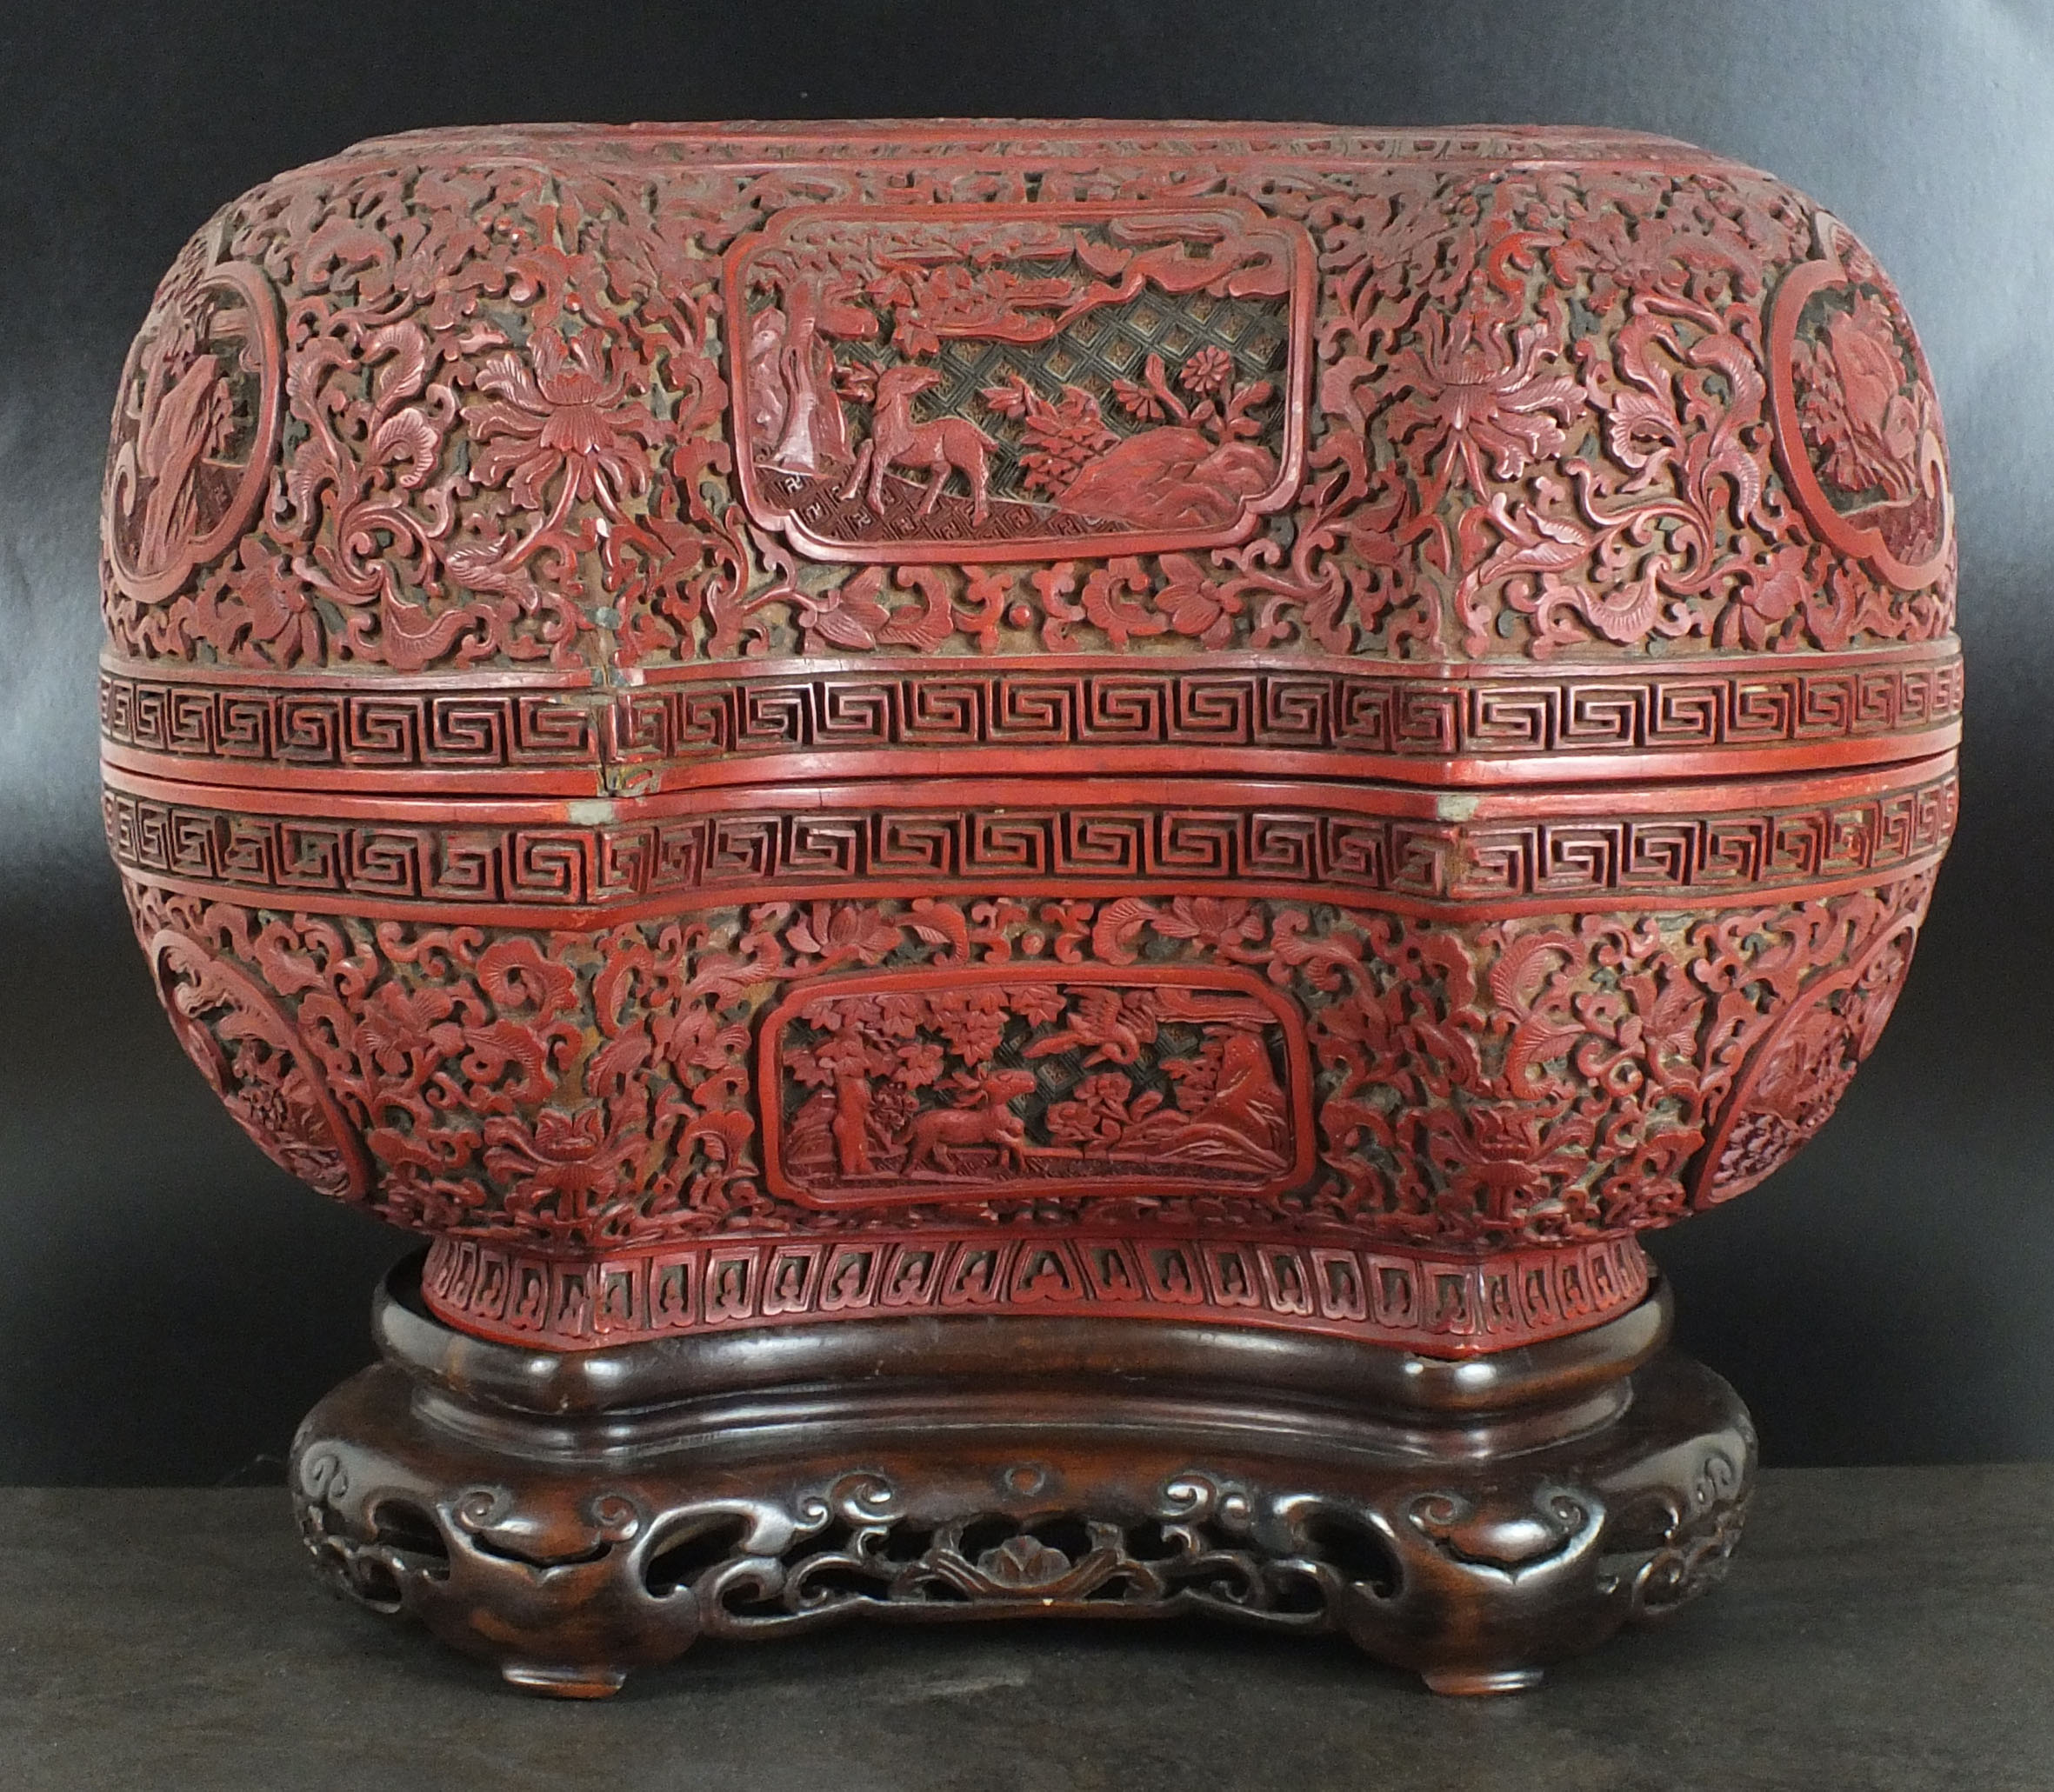 Chinese boxes of delight make 18k antique collecting for Asian antiques uk